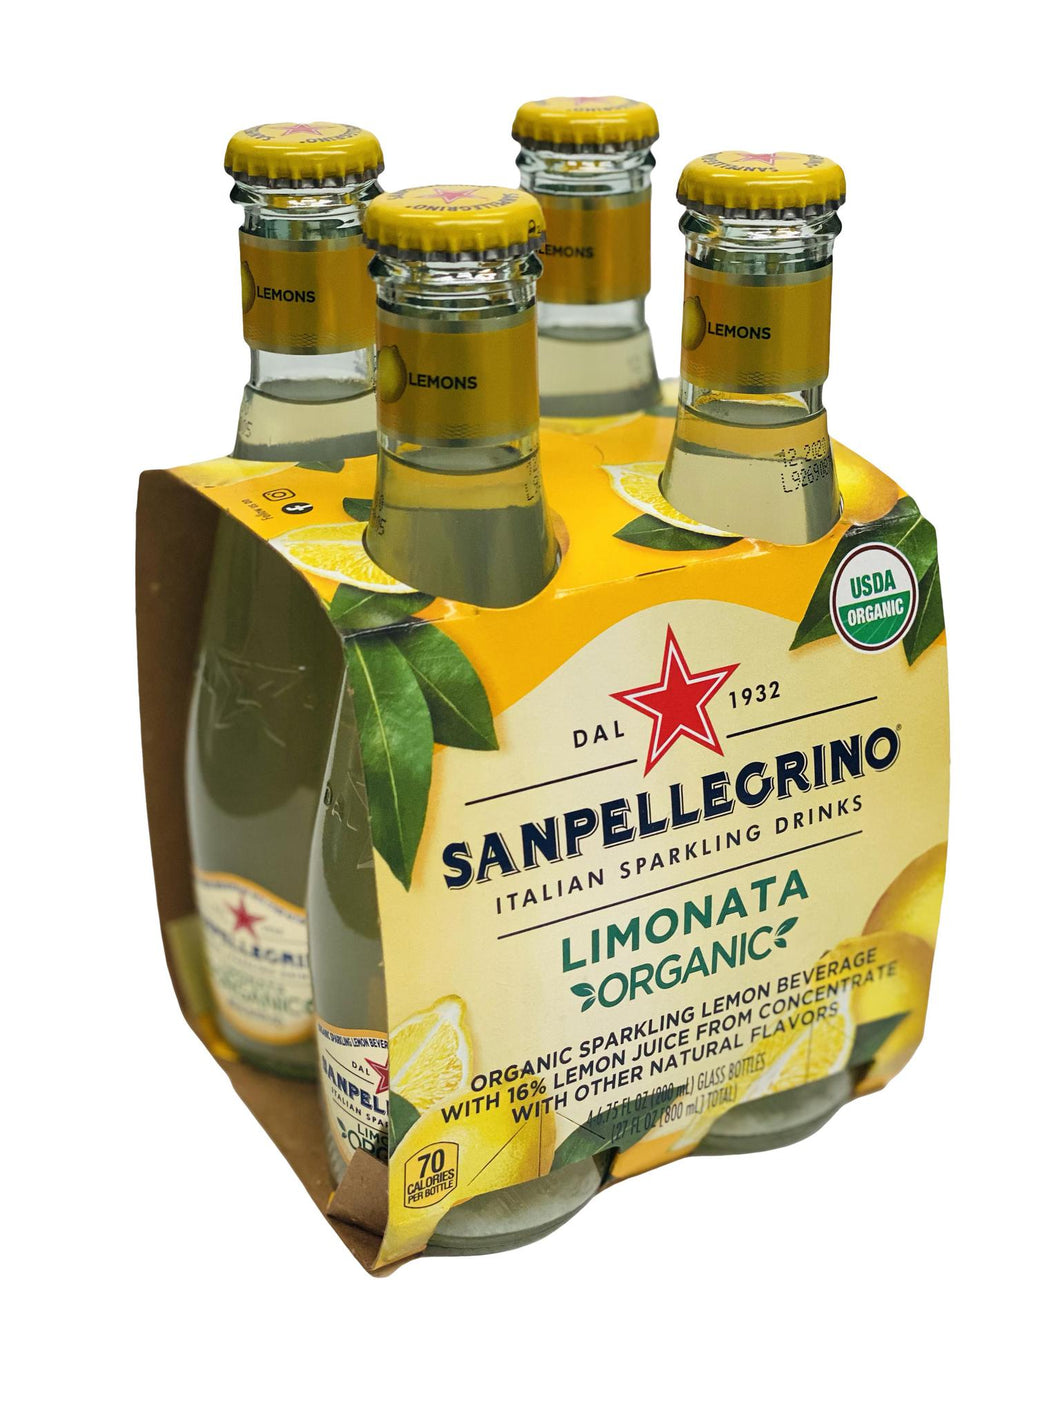 Sanpellegrino Limonata Organic Glass Bottles, 6.25 fl oz